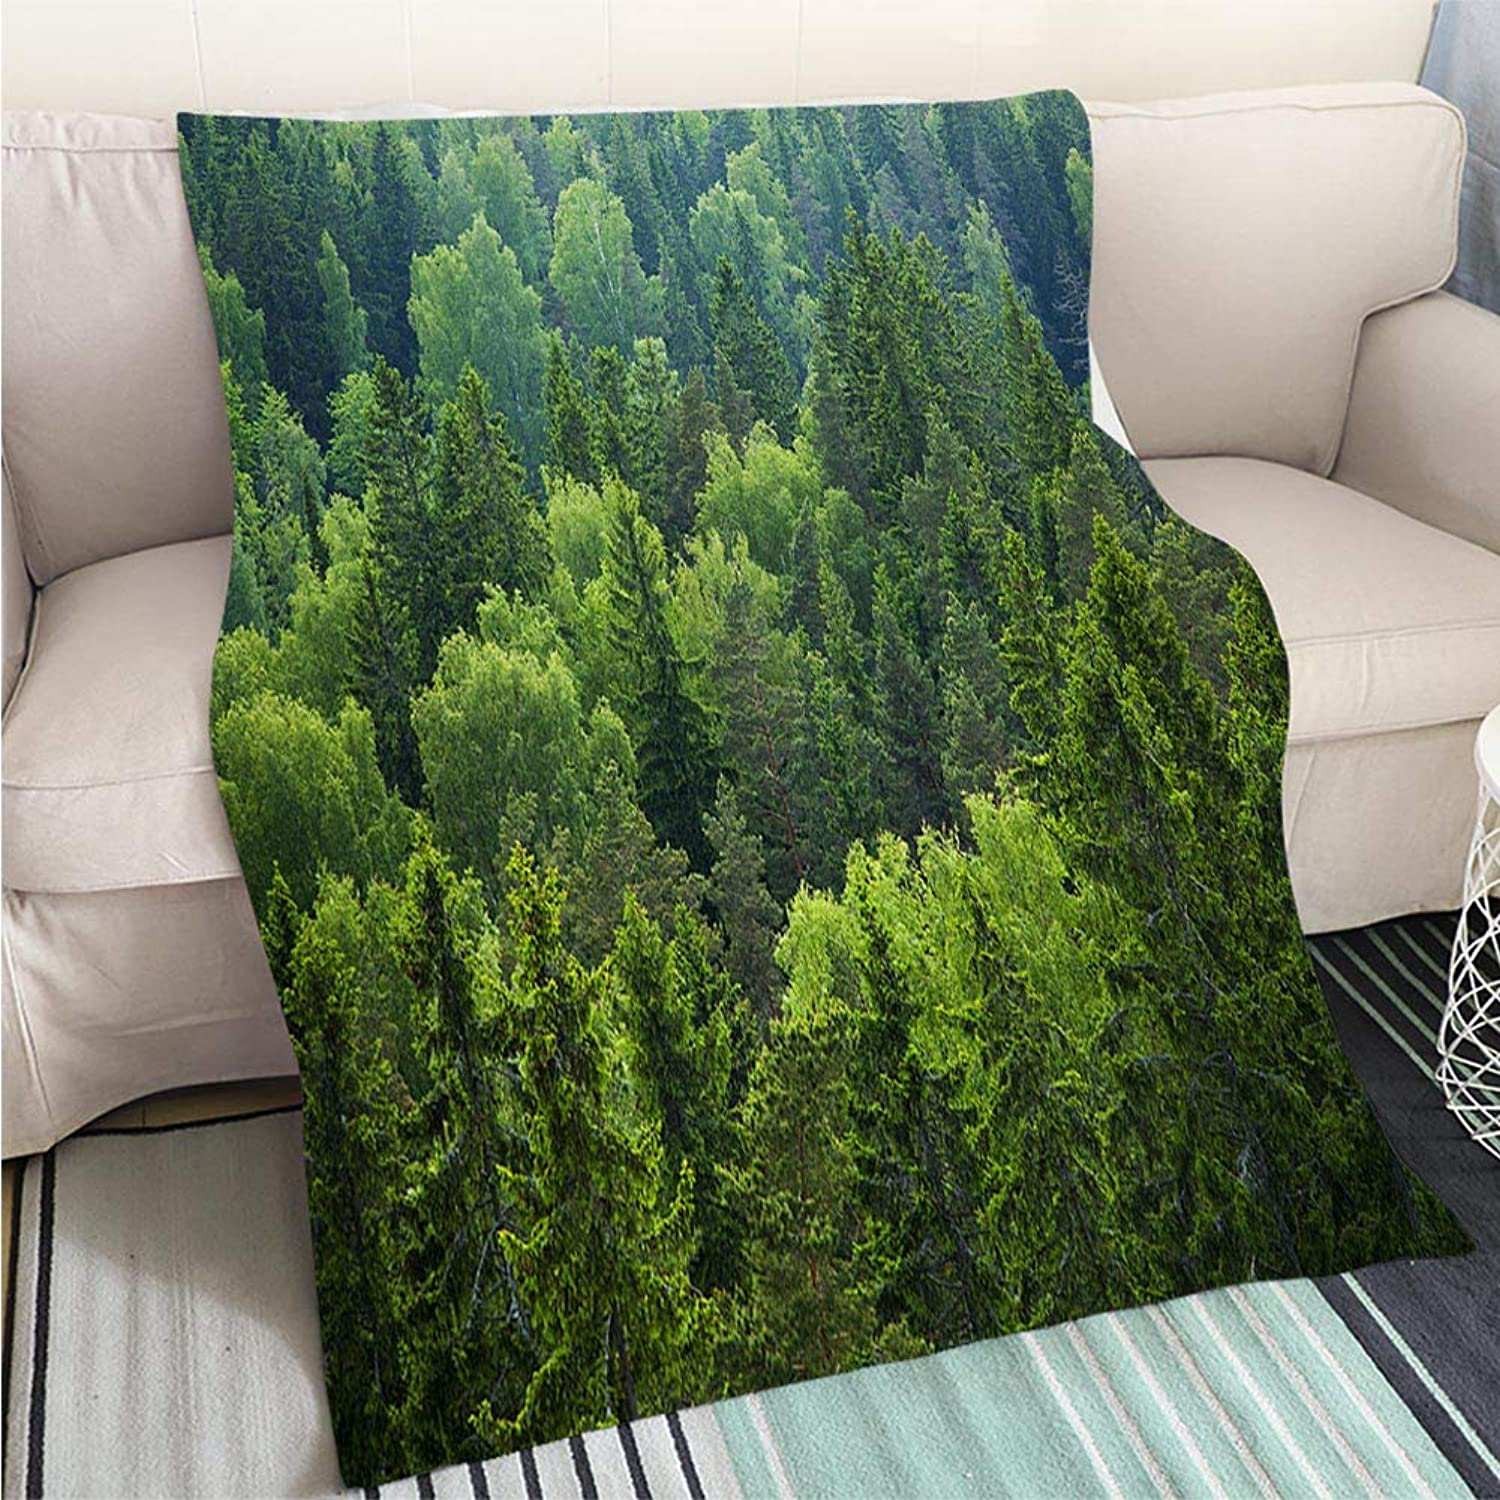 Art Design Photos Cool Quilt Mixed Forest Perfect for Couch Sofa or Bed Cool Quilt